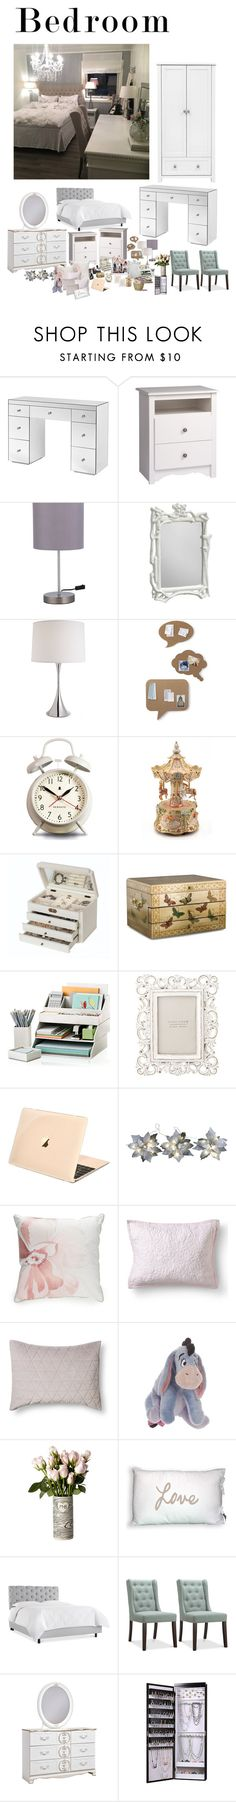 """""""What's In My Room"""" by medicicapetiens ❤ liked on Polyvore featuring interior, interiors, interior design, home, home decor, interior decorating, Prepac, Stray Dog Designs, Dollhouse and Michael Aram"""